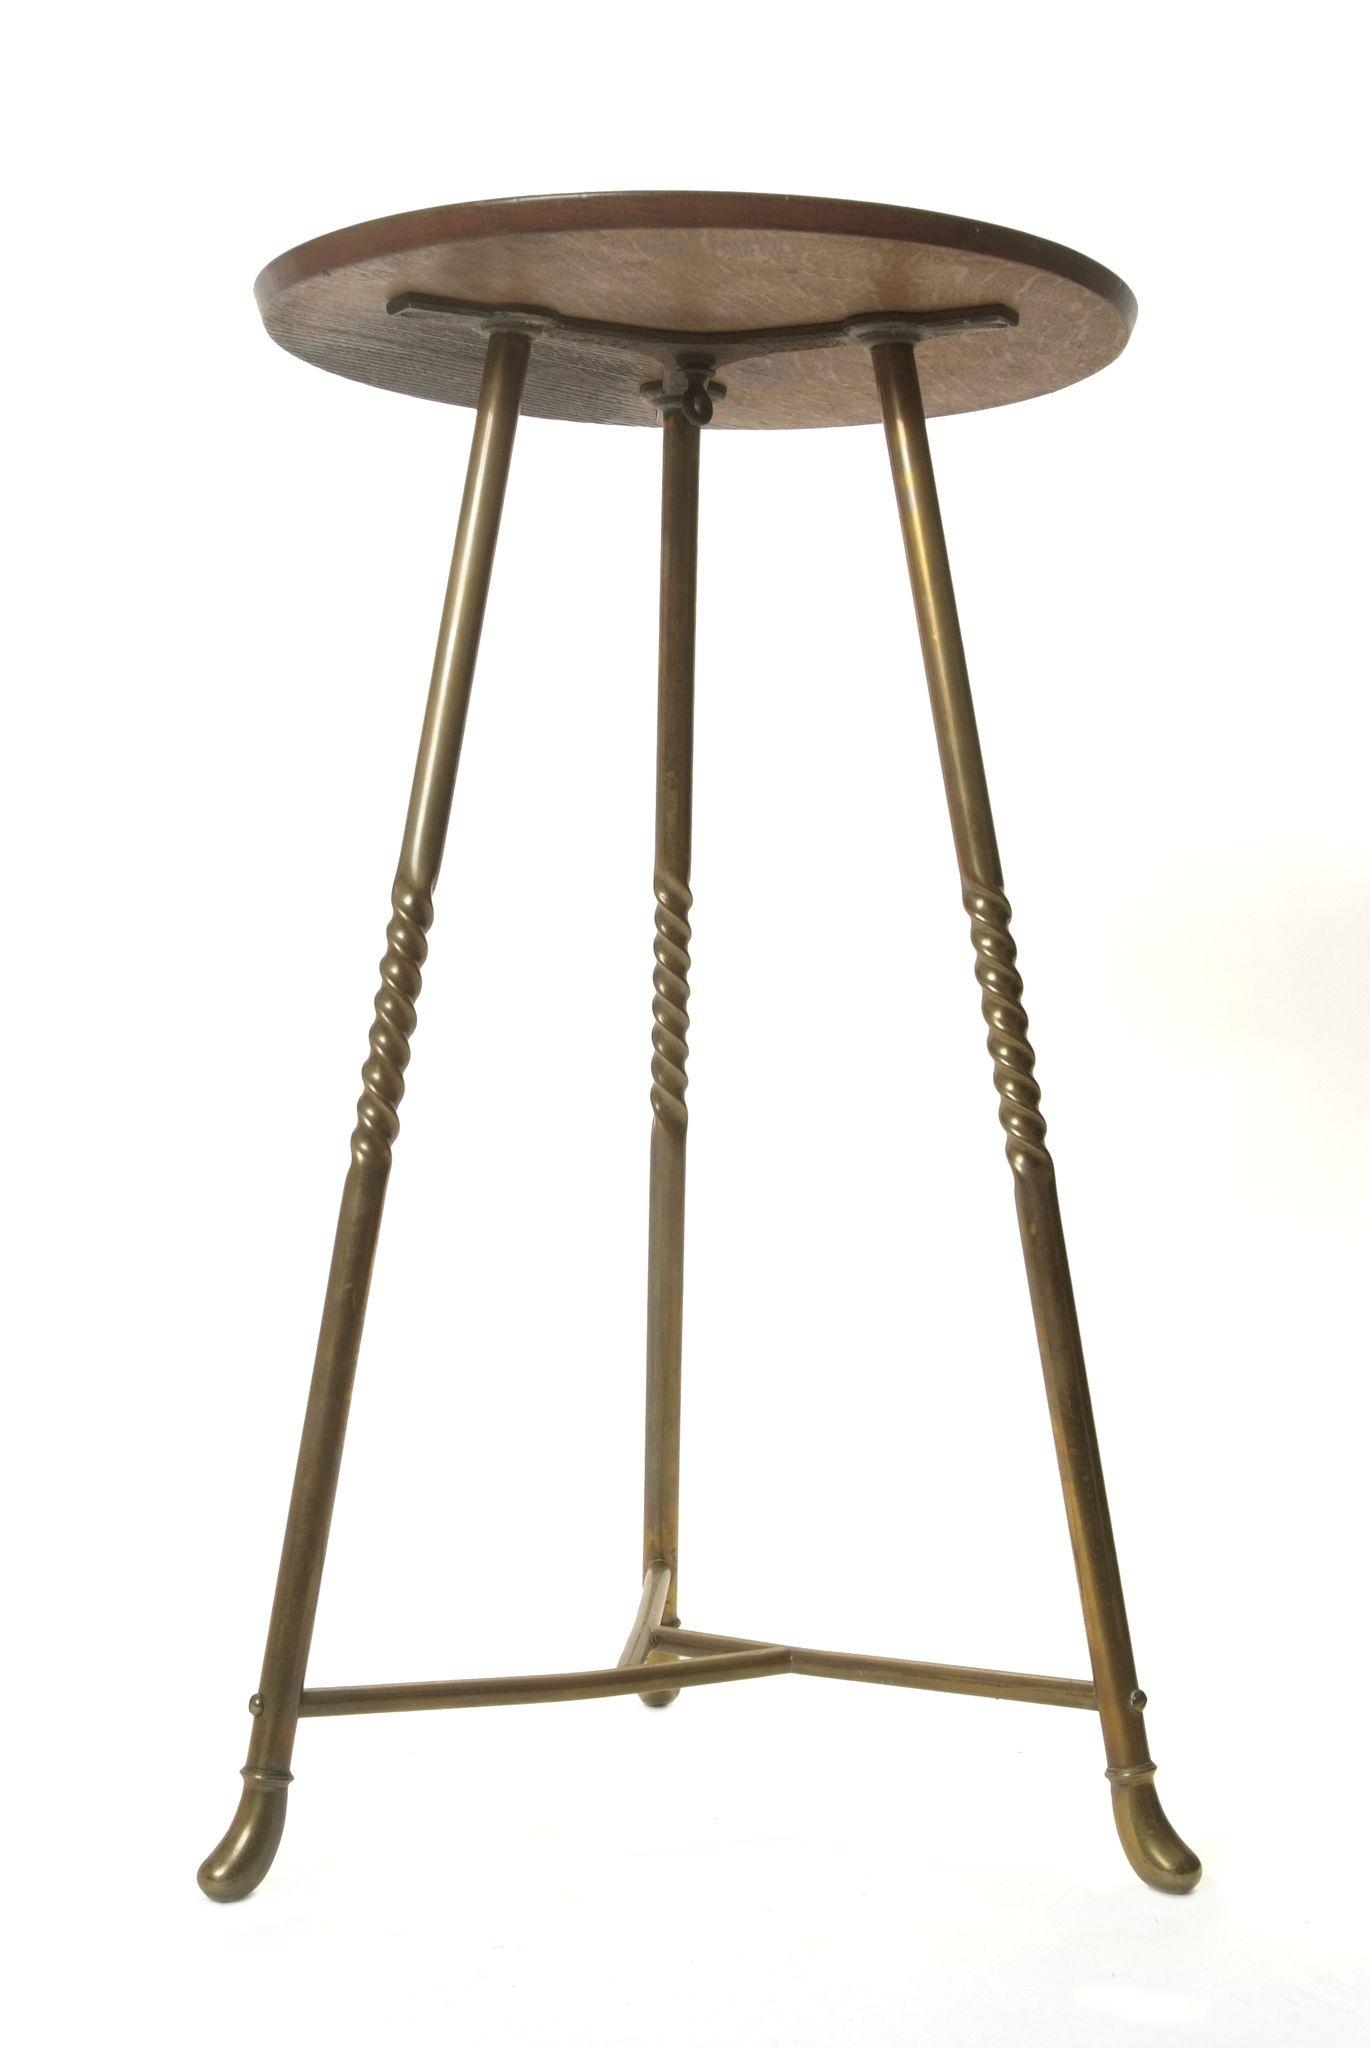 Brass and oak table stand from doriswarehouse on ruby lane for Table stand i 52 compose